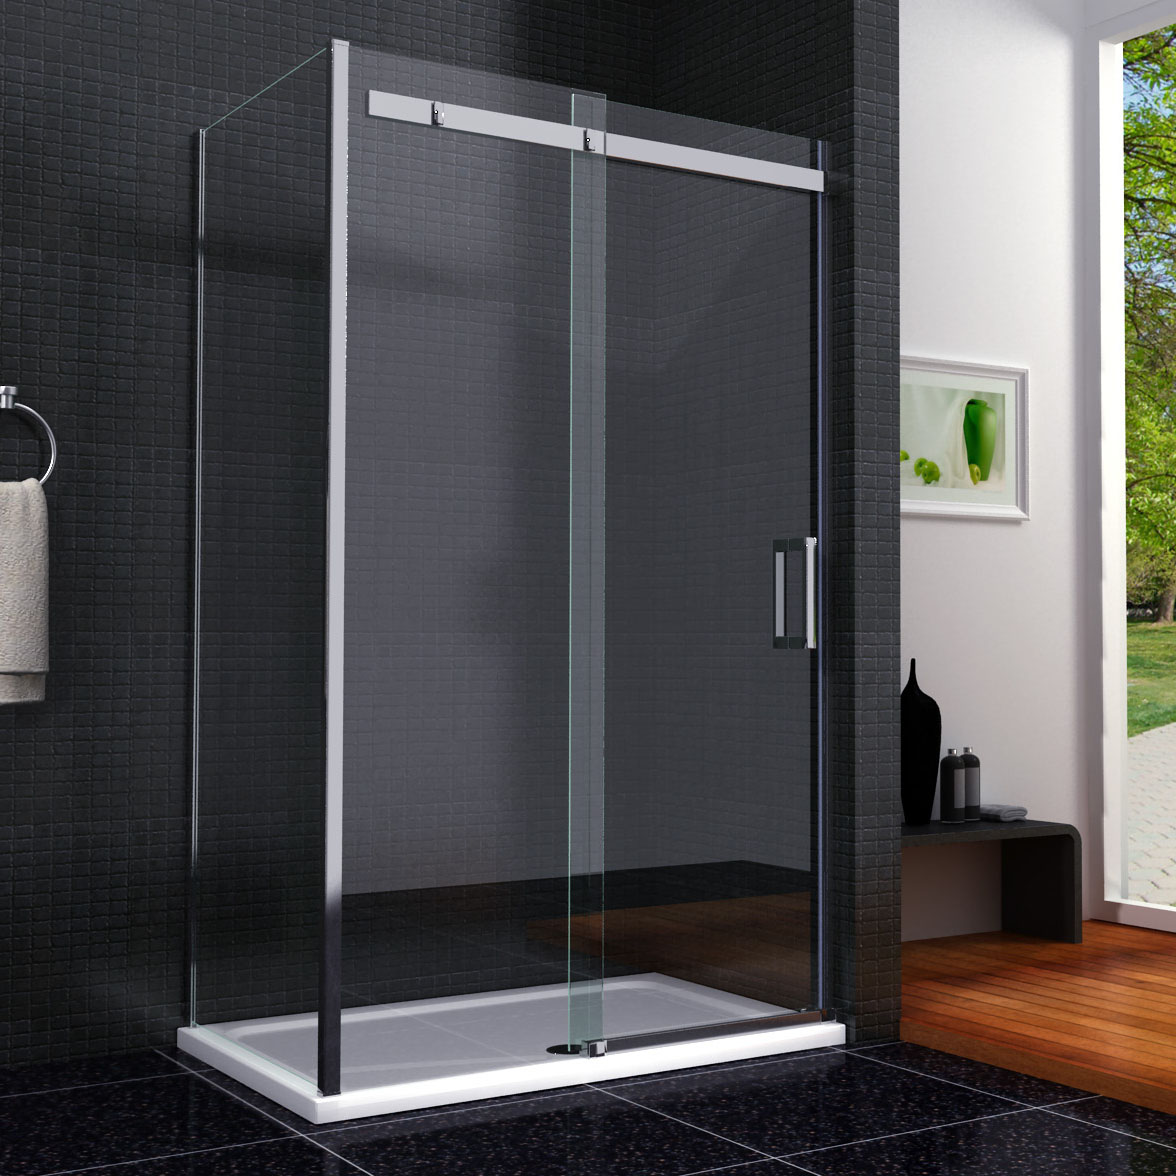 1000 x 800 Frameless Shower Enclosure Sliding Door Screen + Side ...